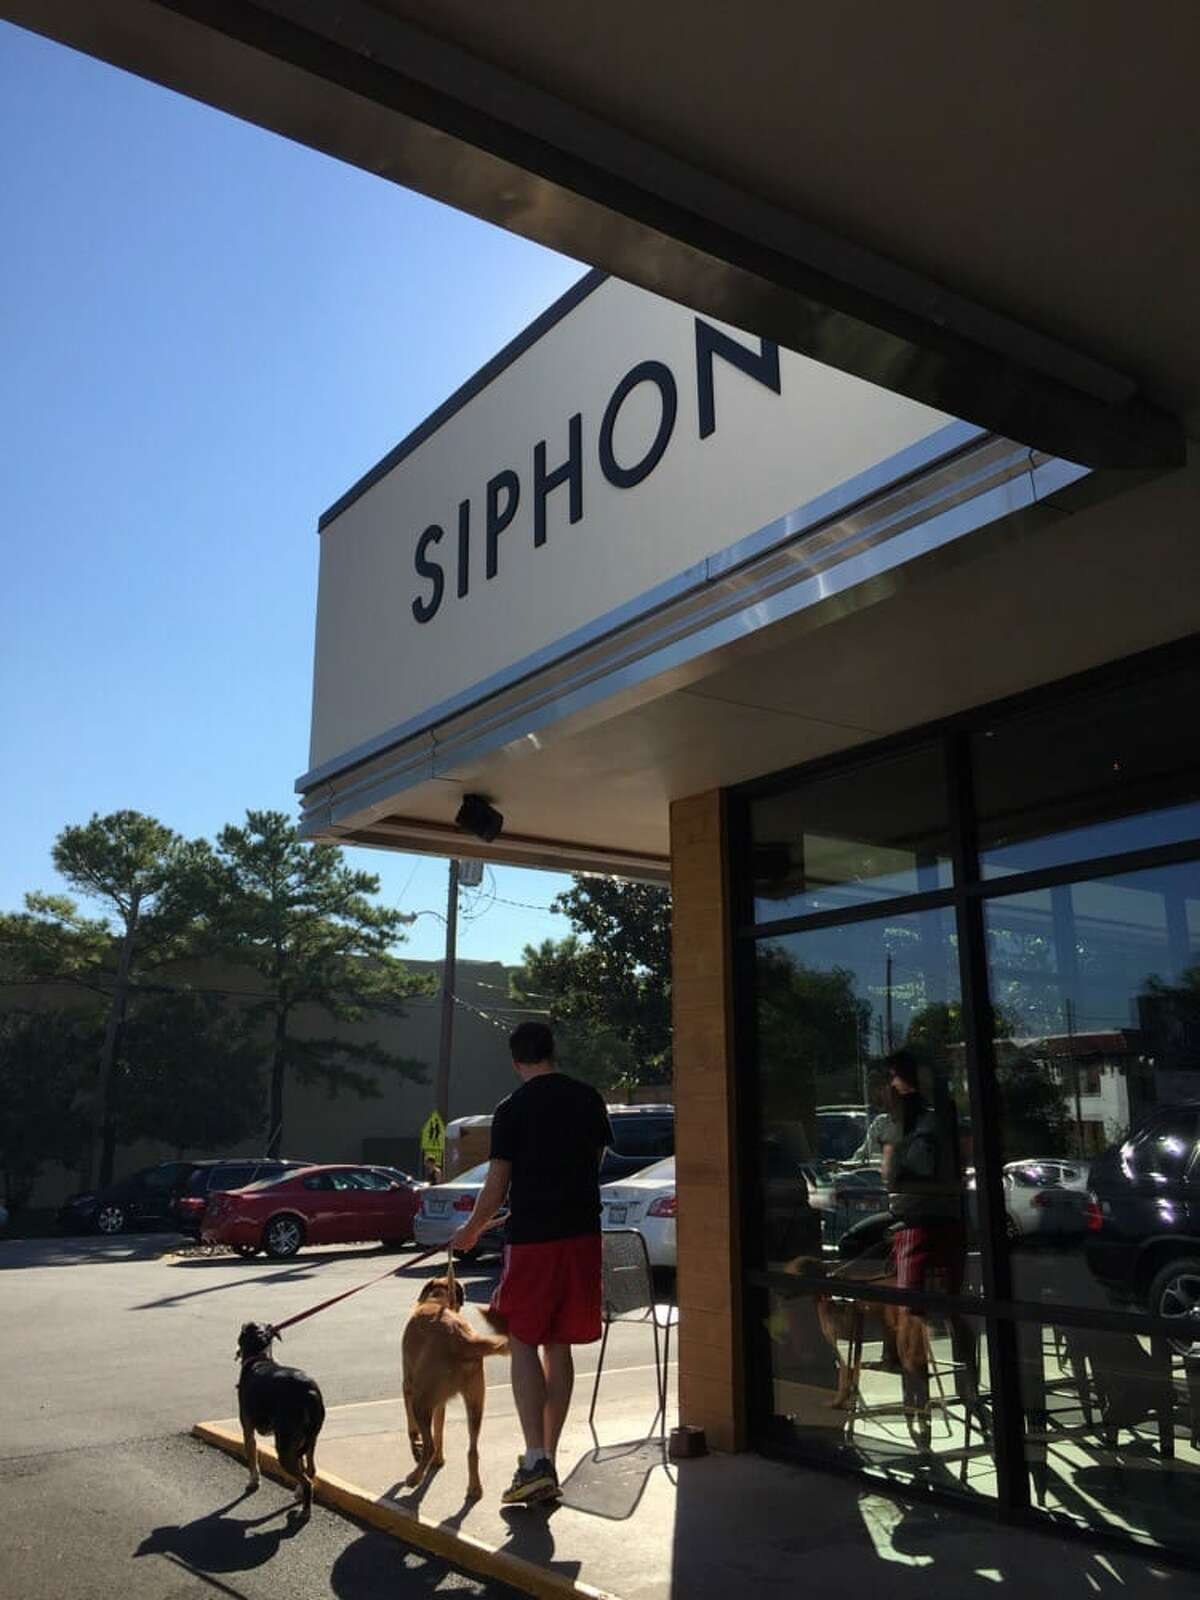 9 A.M.Start the day off right with some coffee and breakfast on the patio atSiphon Coffeeoff Alabama Street.Breakfast items are served until 5 p.m.if you and the pooch want to sleep in a little.Photo courtesy Sumeer T/Yelp